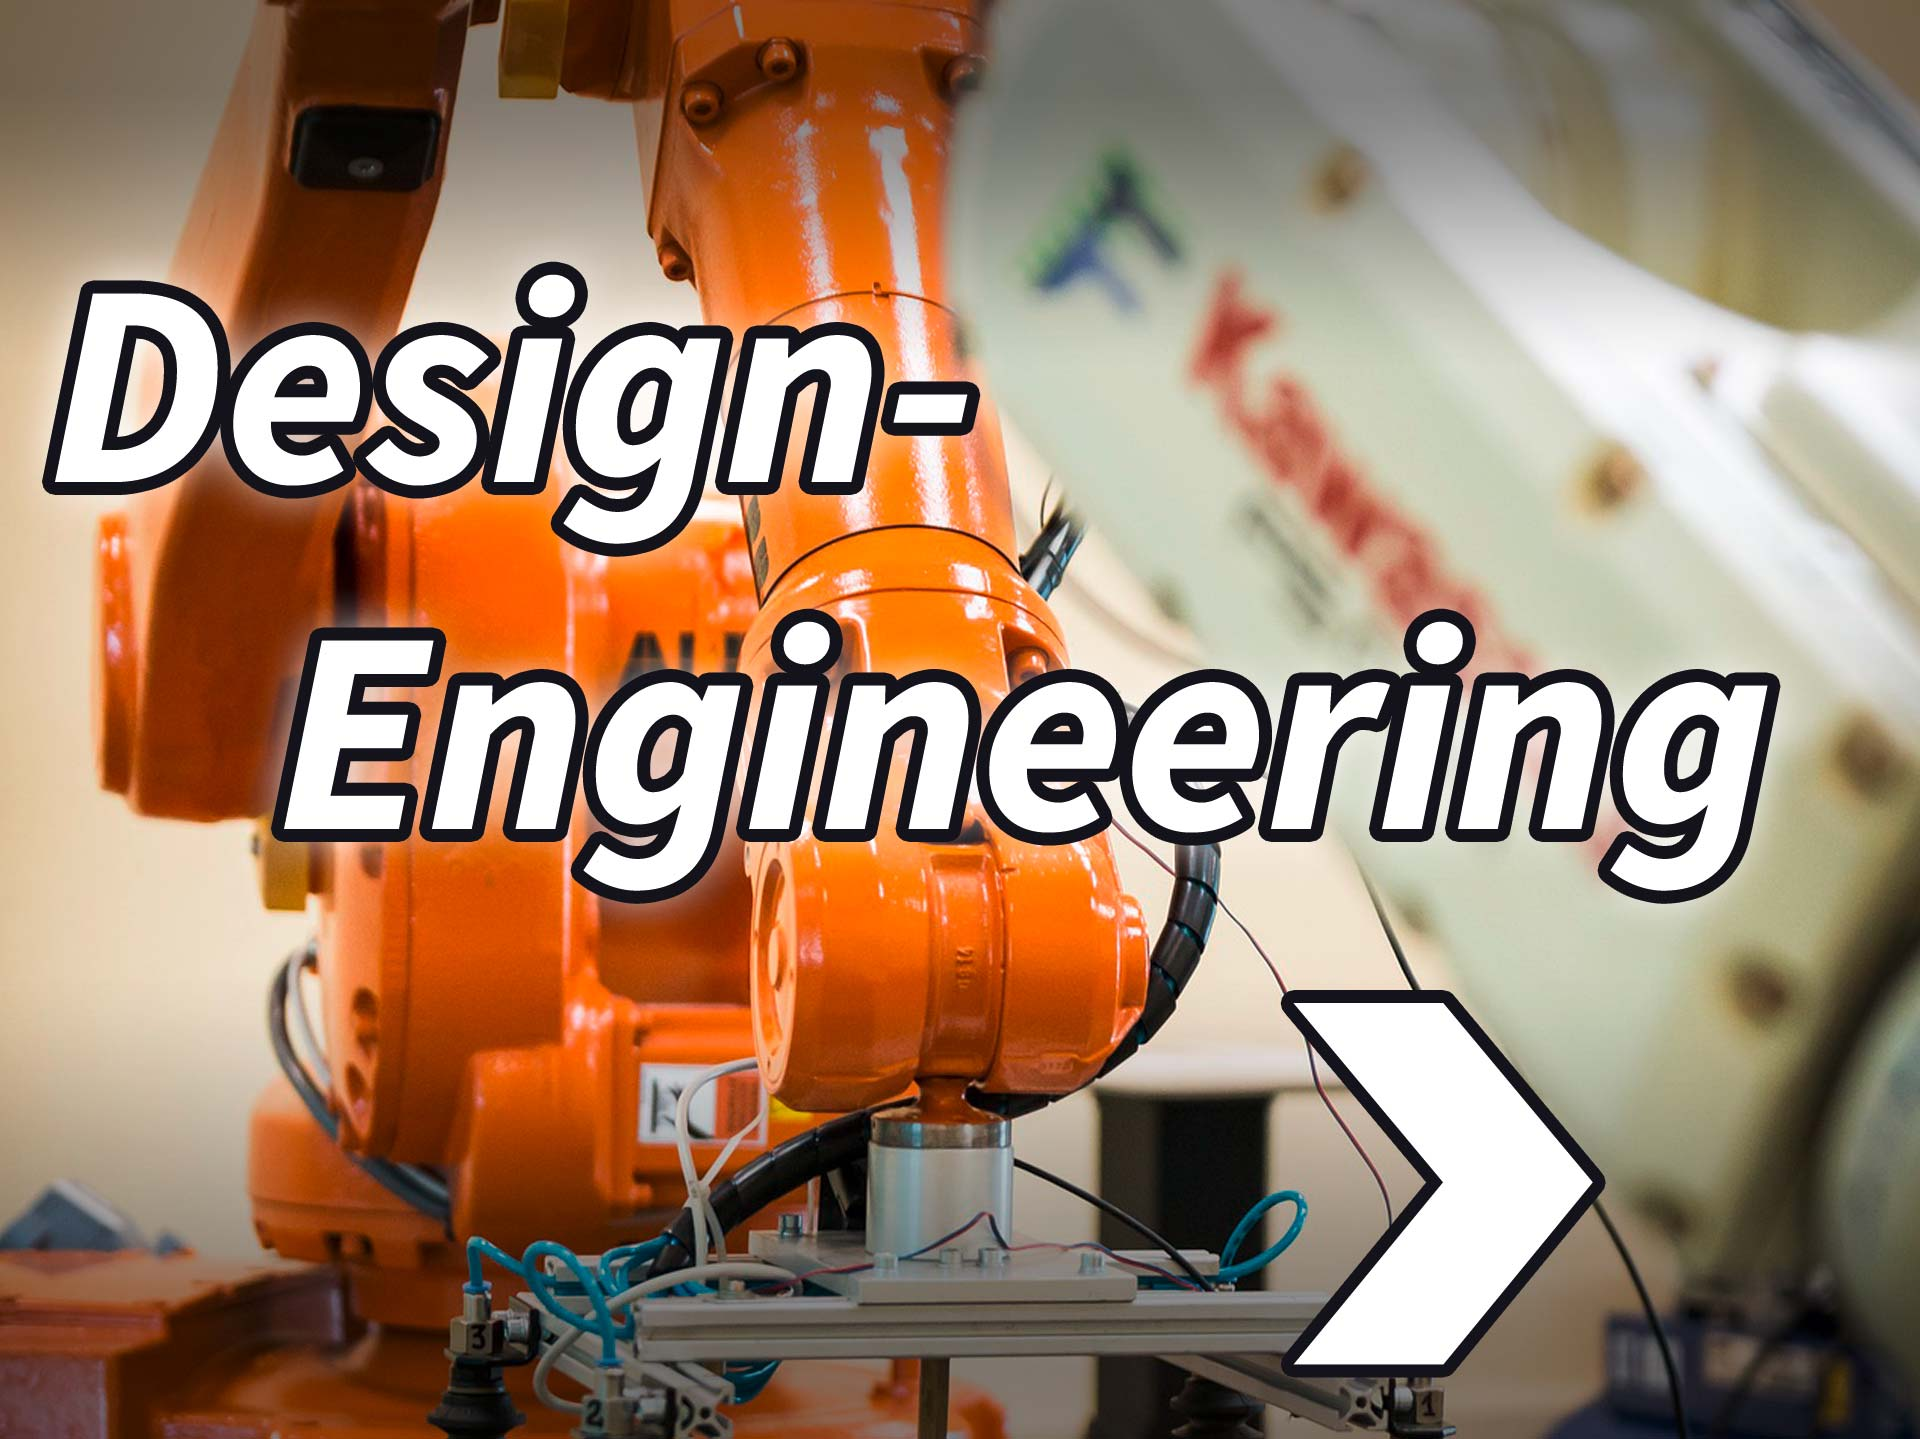 Alles über Design-Engineering